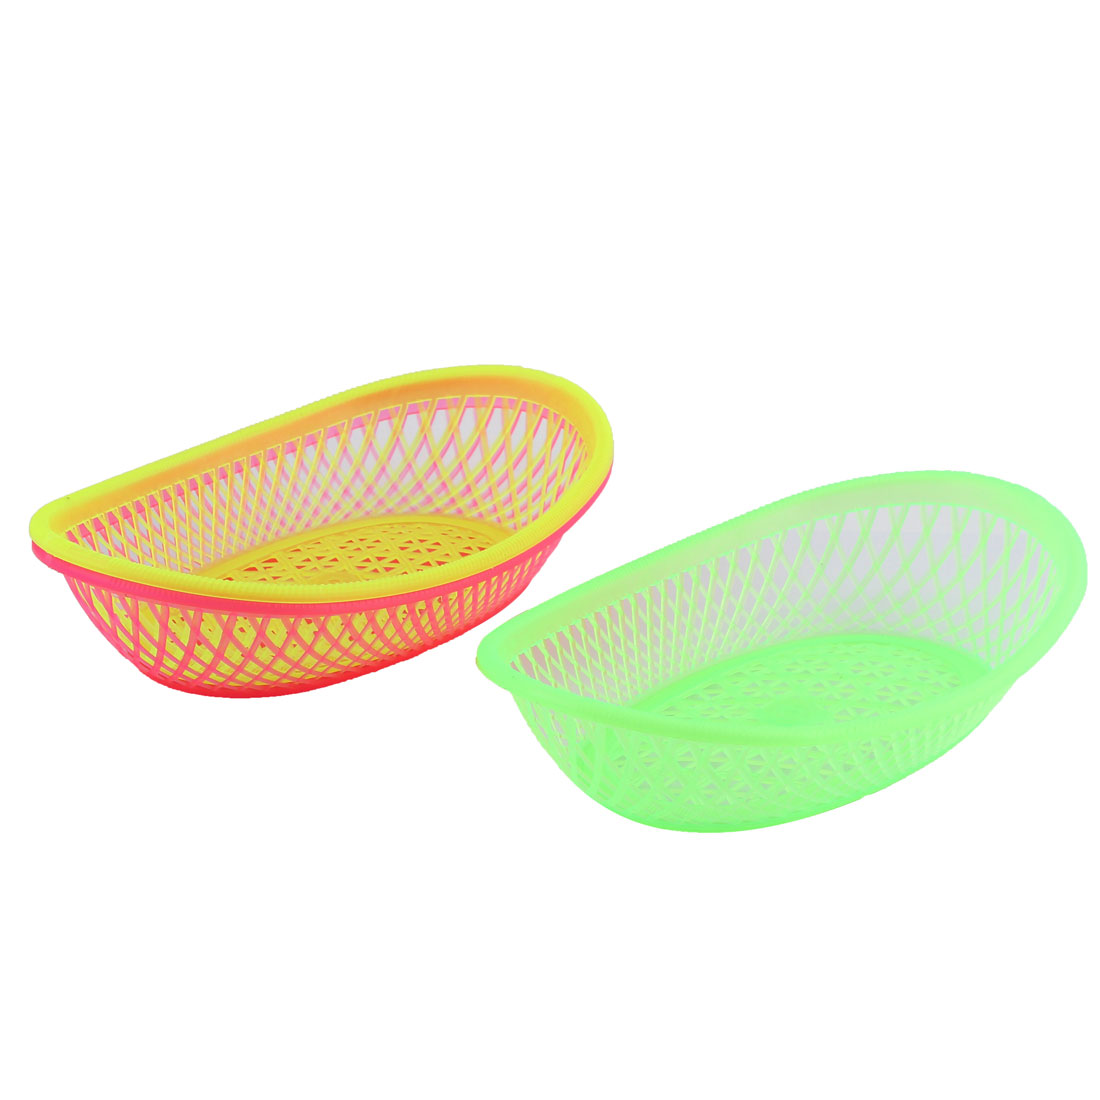 Kitchenware Plastic Oval Fruit Vegetable Washing Basket Strainer Holder 3 Pcs